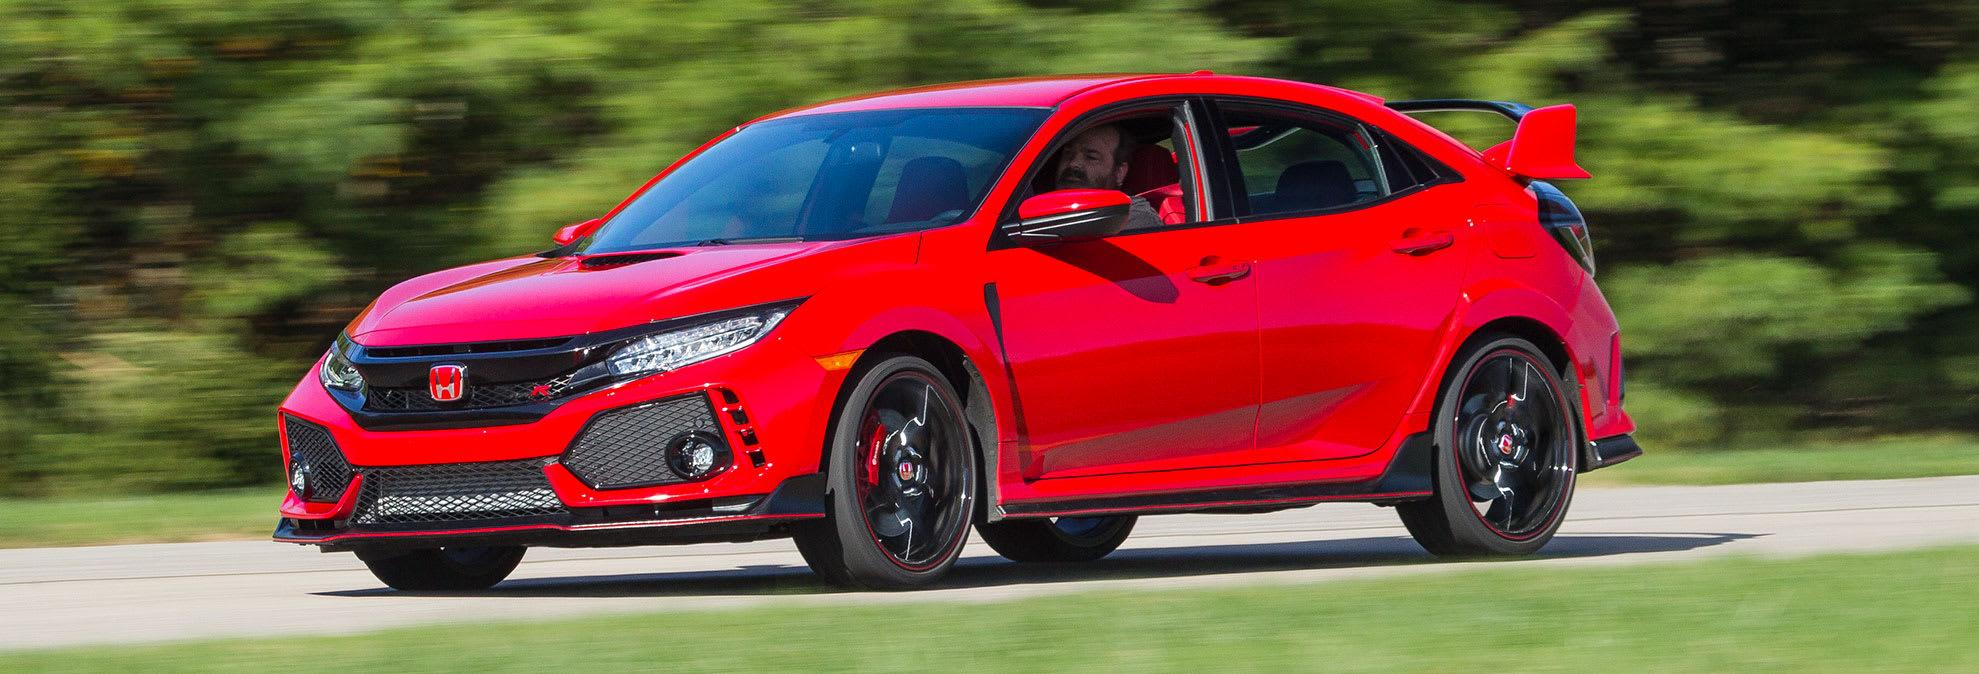 The Honda Civic Type R Proves Its Track Prowess